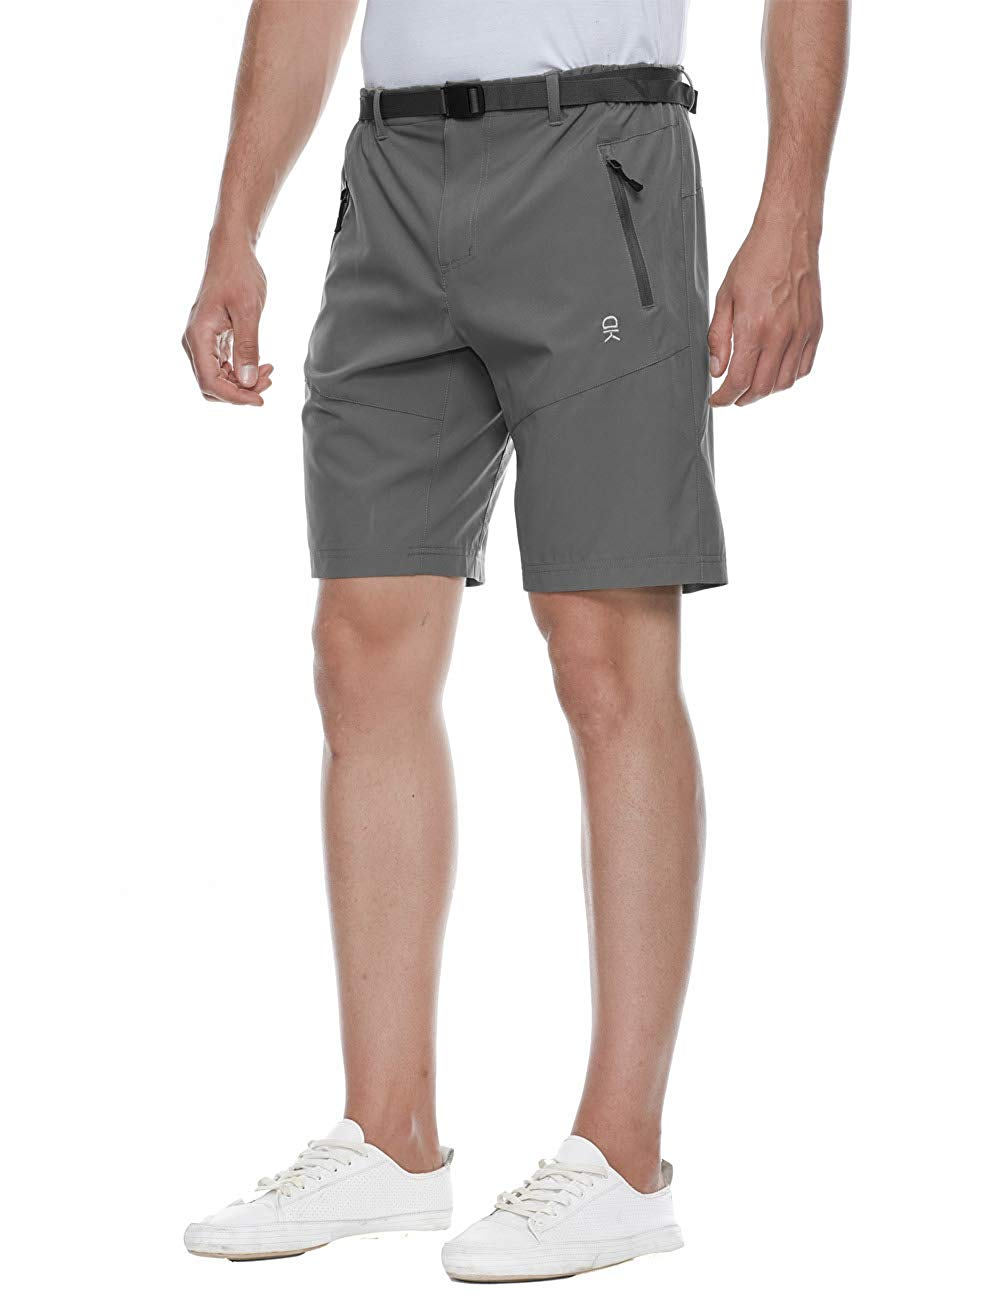 6599d354f7 Get Quotations · TOPSUN Men's Outdoor Lightweight Cargo Shorts Outdoor  Stretchy Hiking Short Zipper Pocket,Quickdry,Ajustable